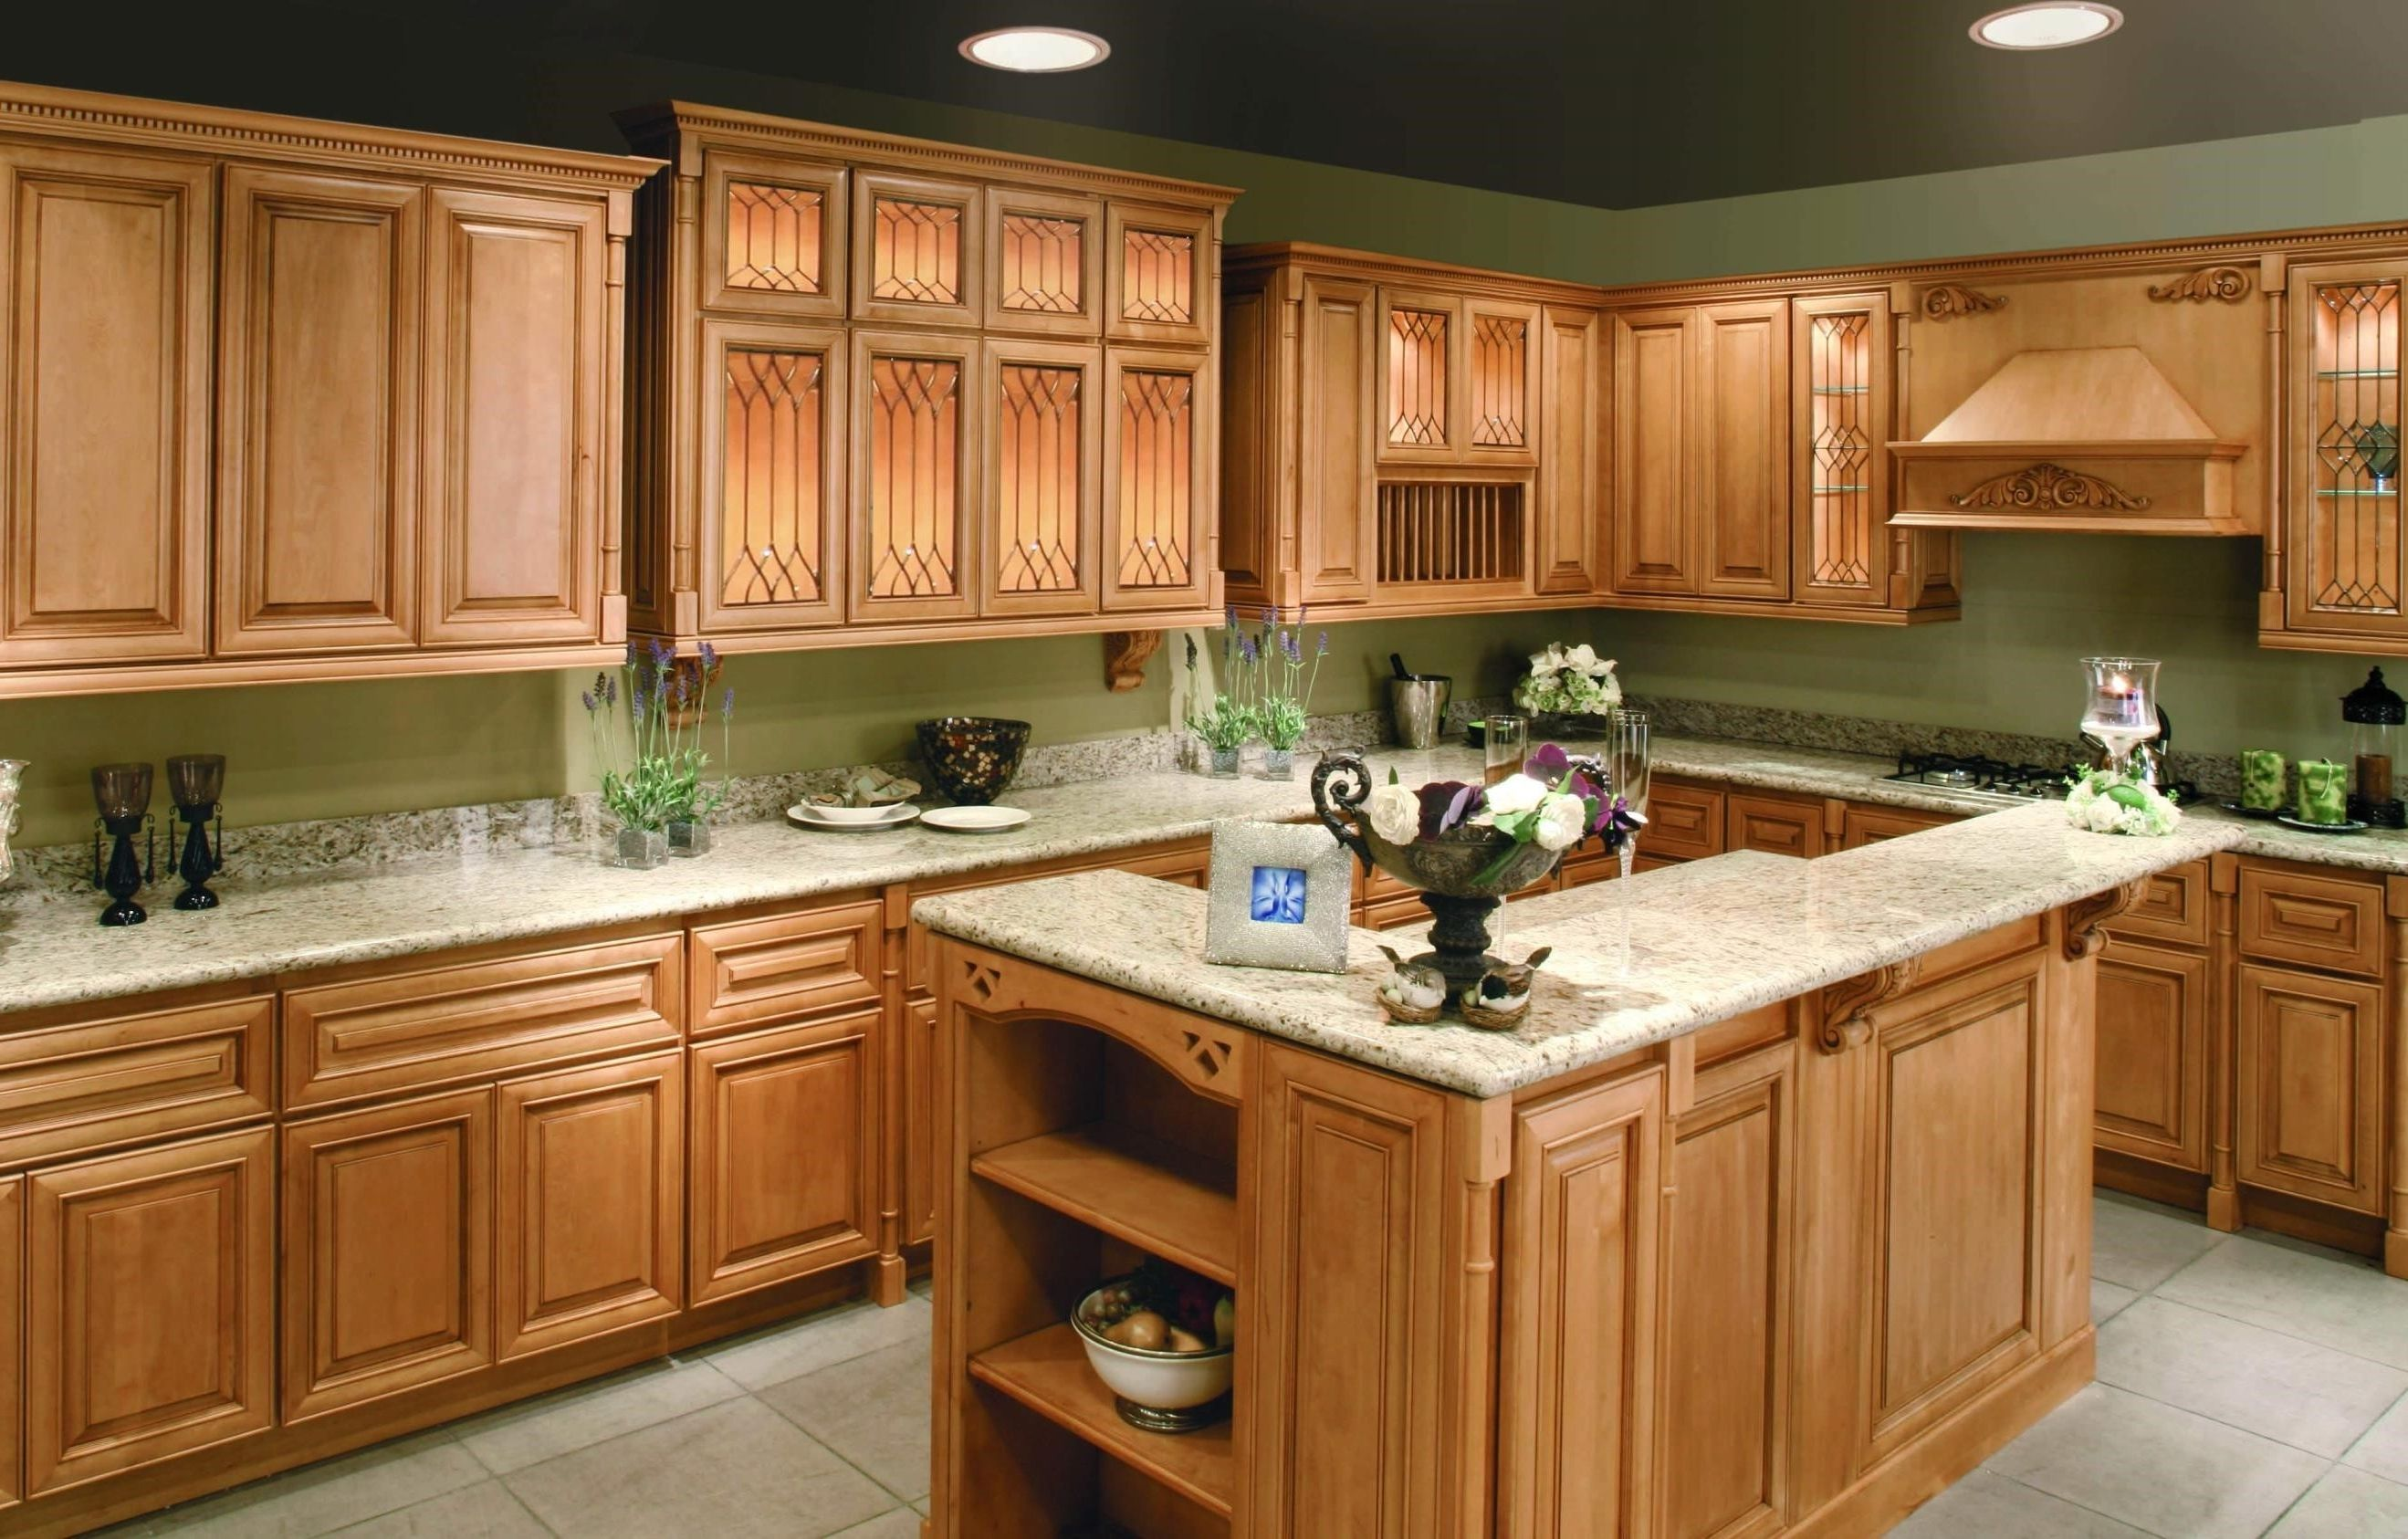 Great Kitchen Paint Colors With Oak Cabinets And Stainless Steel For Can You Appliances R Honey Oak Cabinets Granite Countertops Kitchen Kitchen Cabinet Design